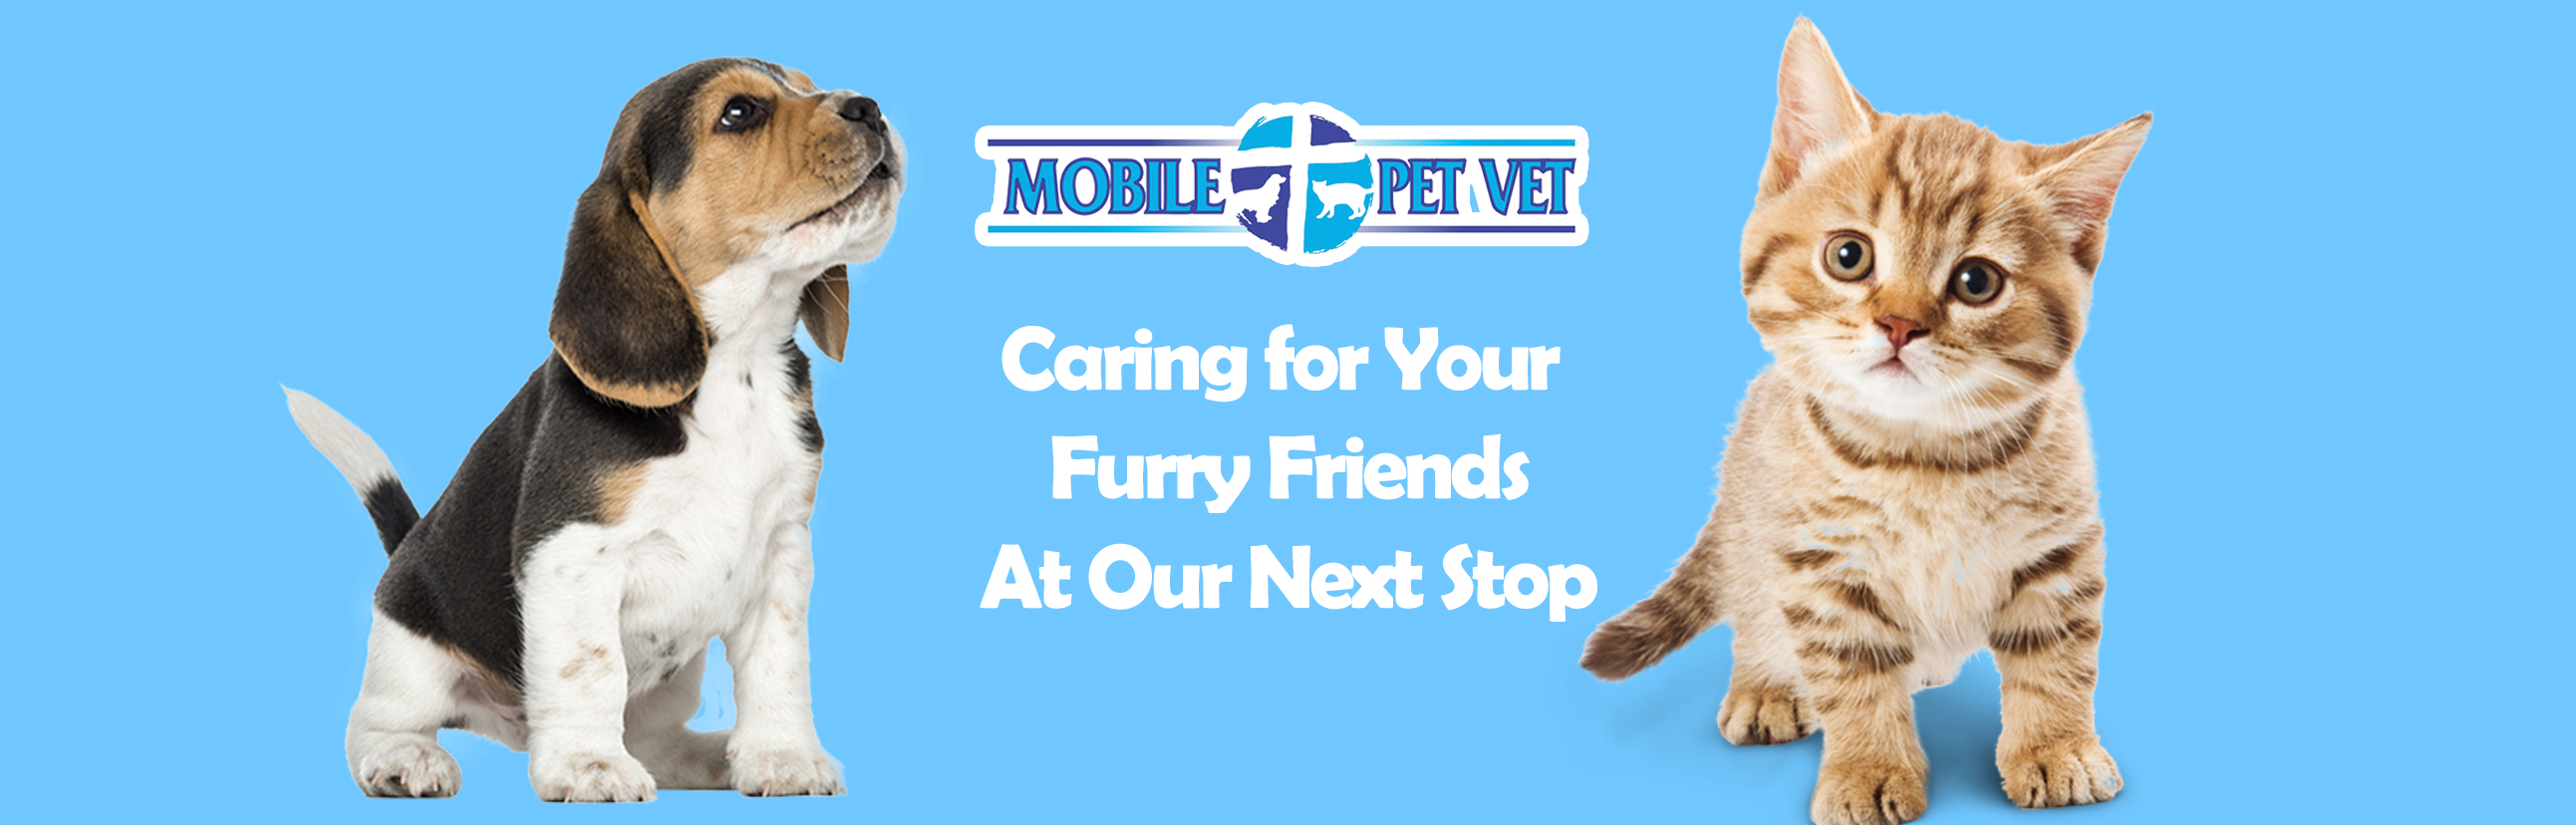 Mobile Vet Near Me Mobile Pet Veterinary Services Of El Paso Texas